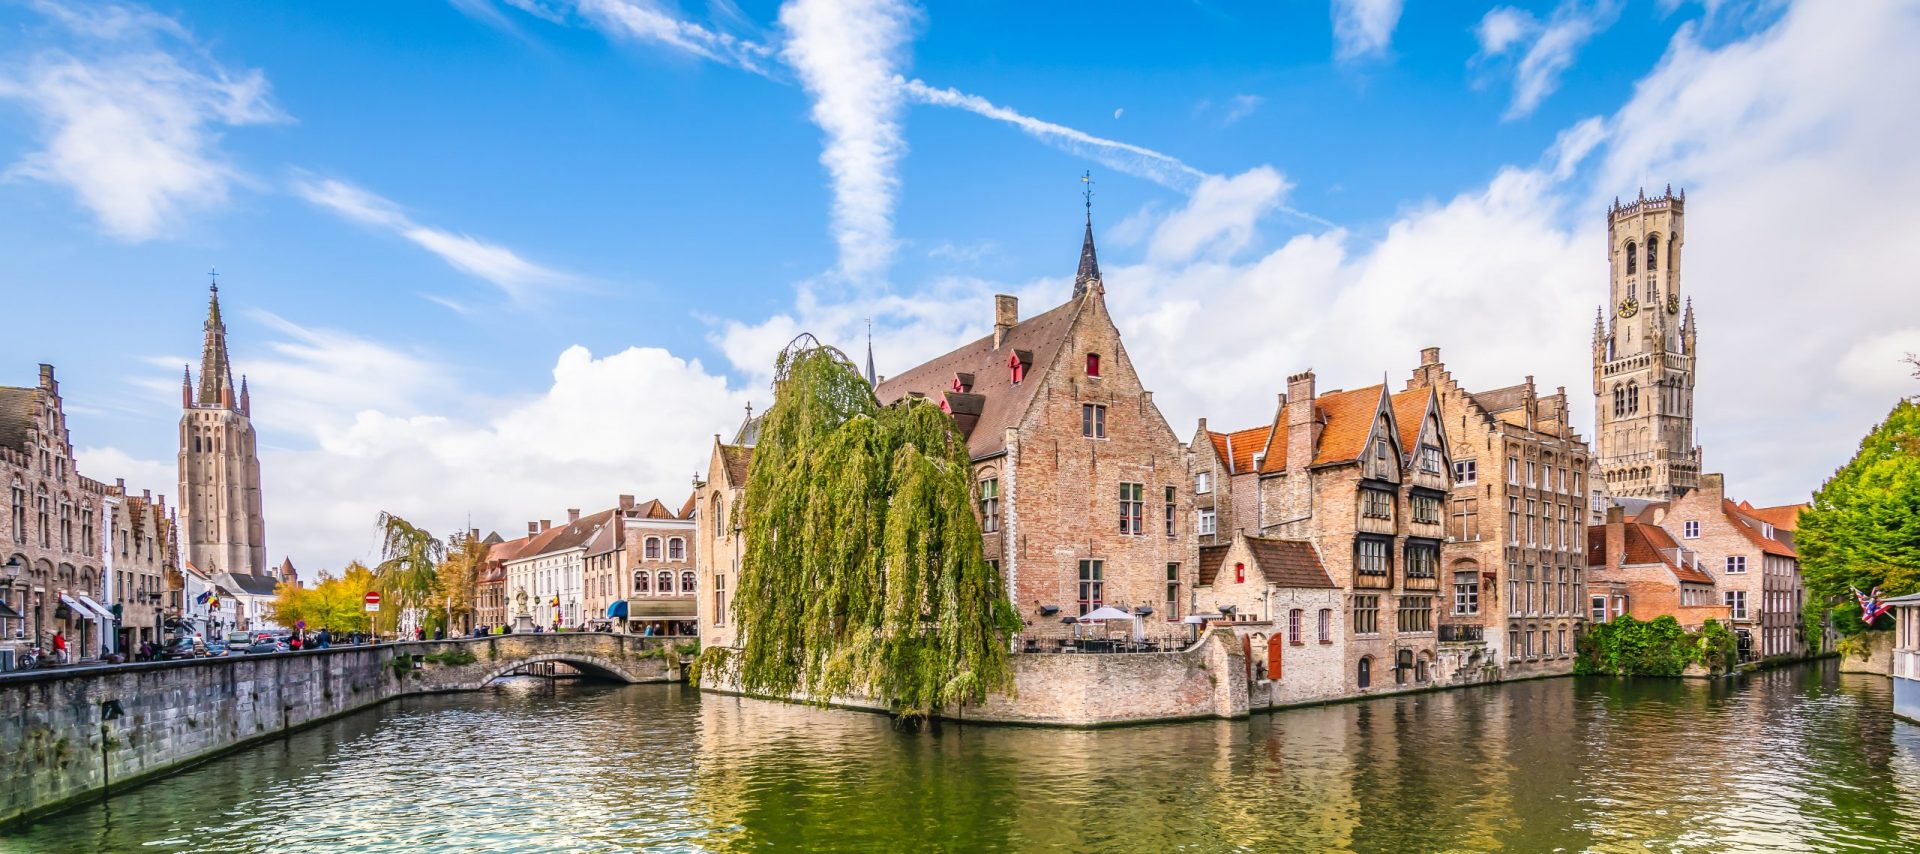 Panoramic city view with Belfry tower and famous canal in Bruges, Belgium